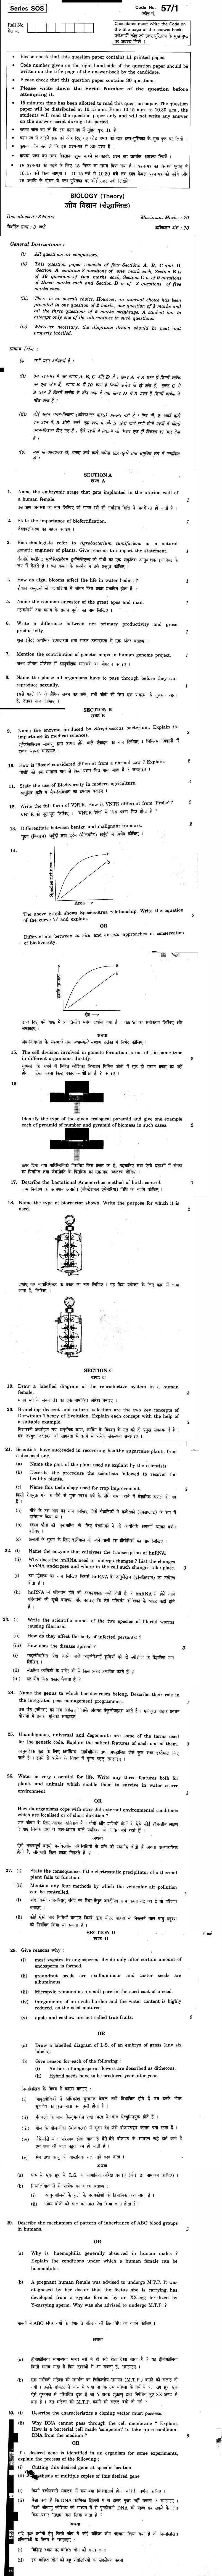 CBSE Class XII Previous Year Question Papers 2011 Biology